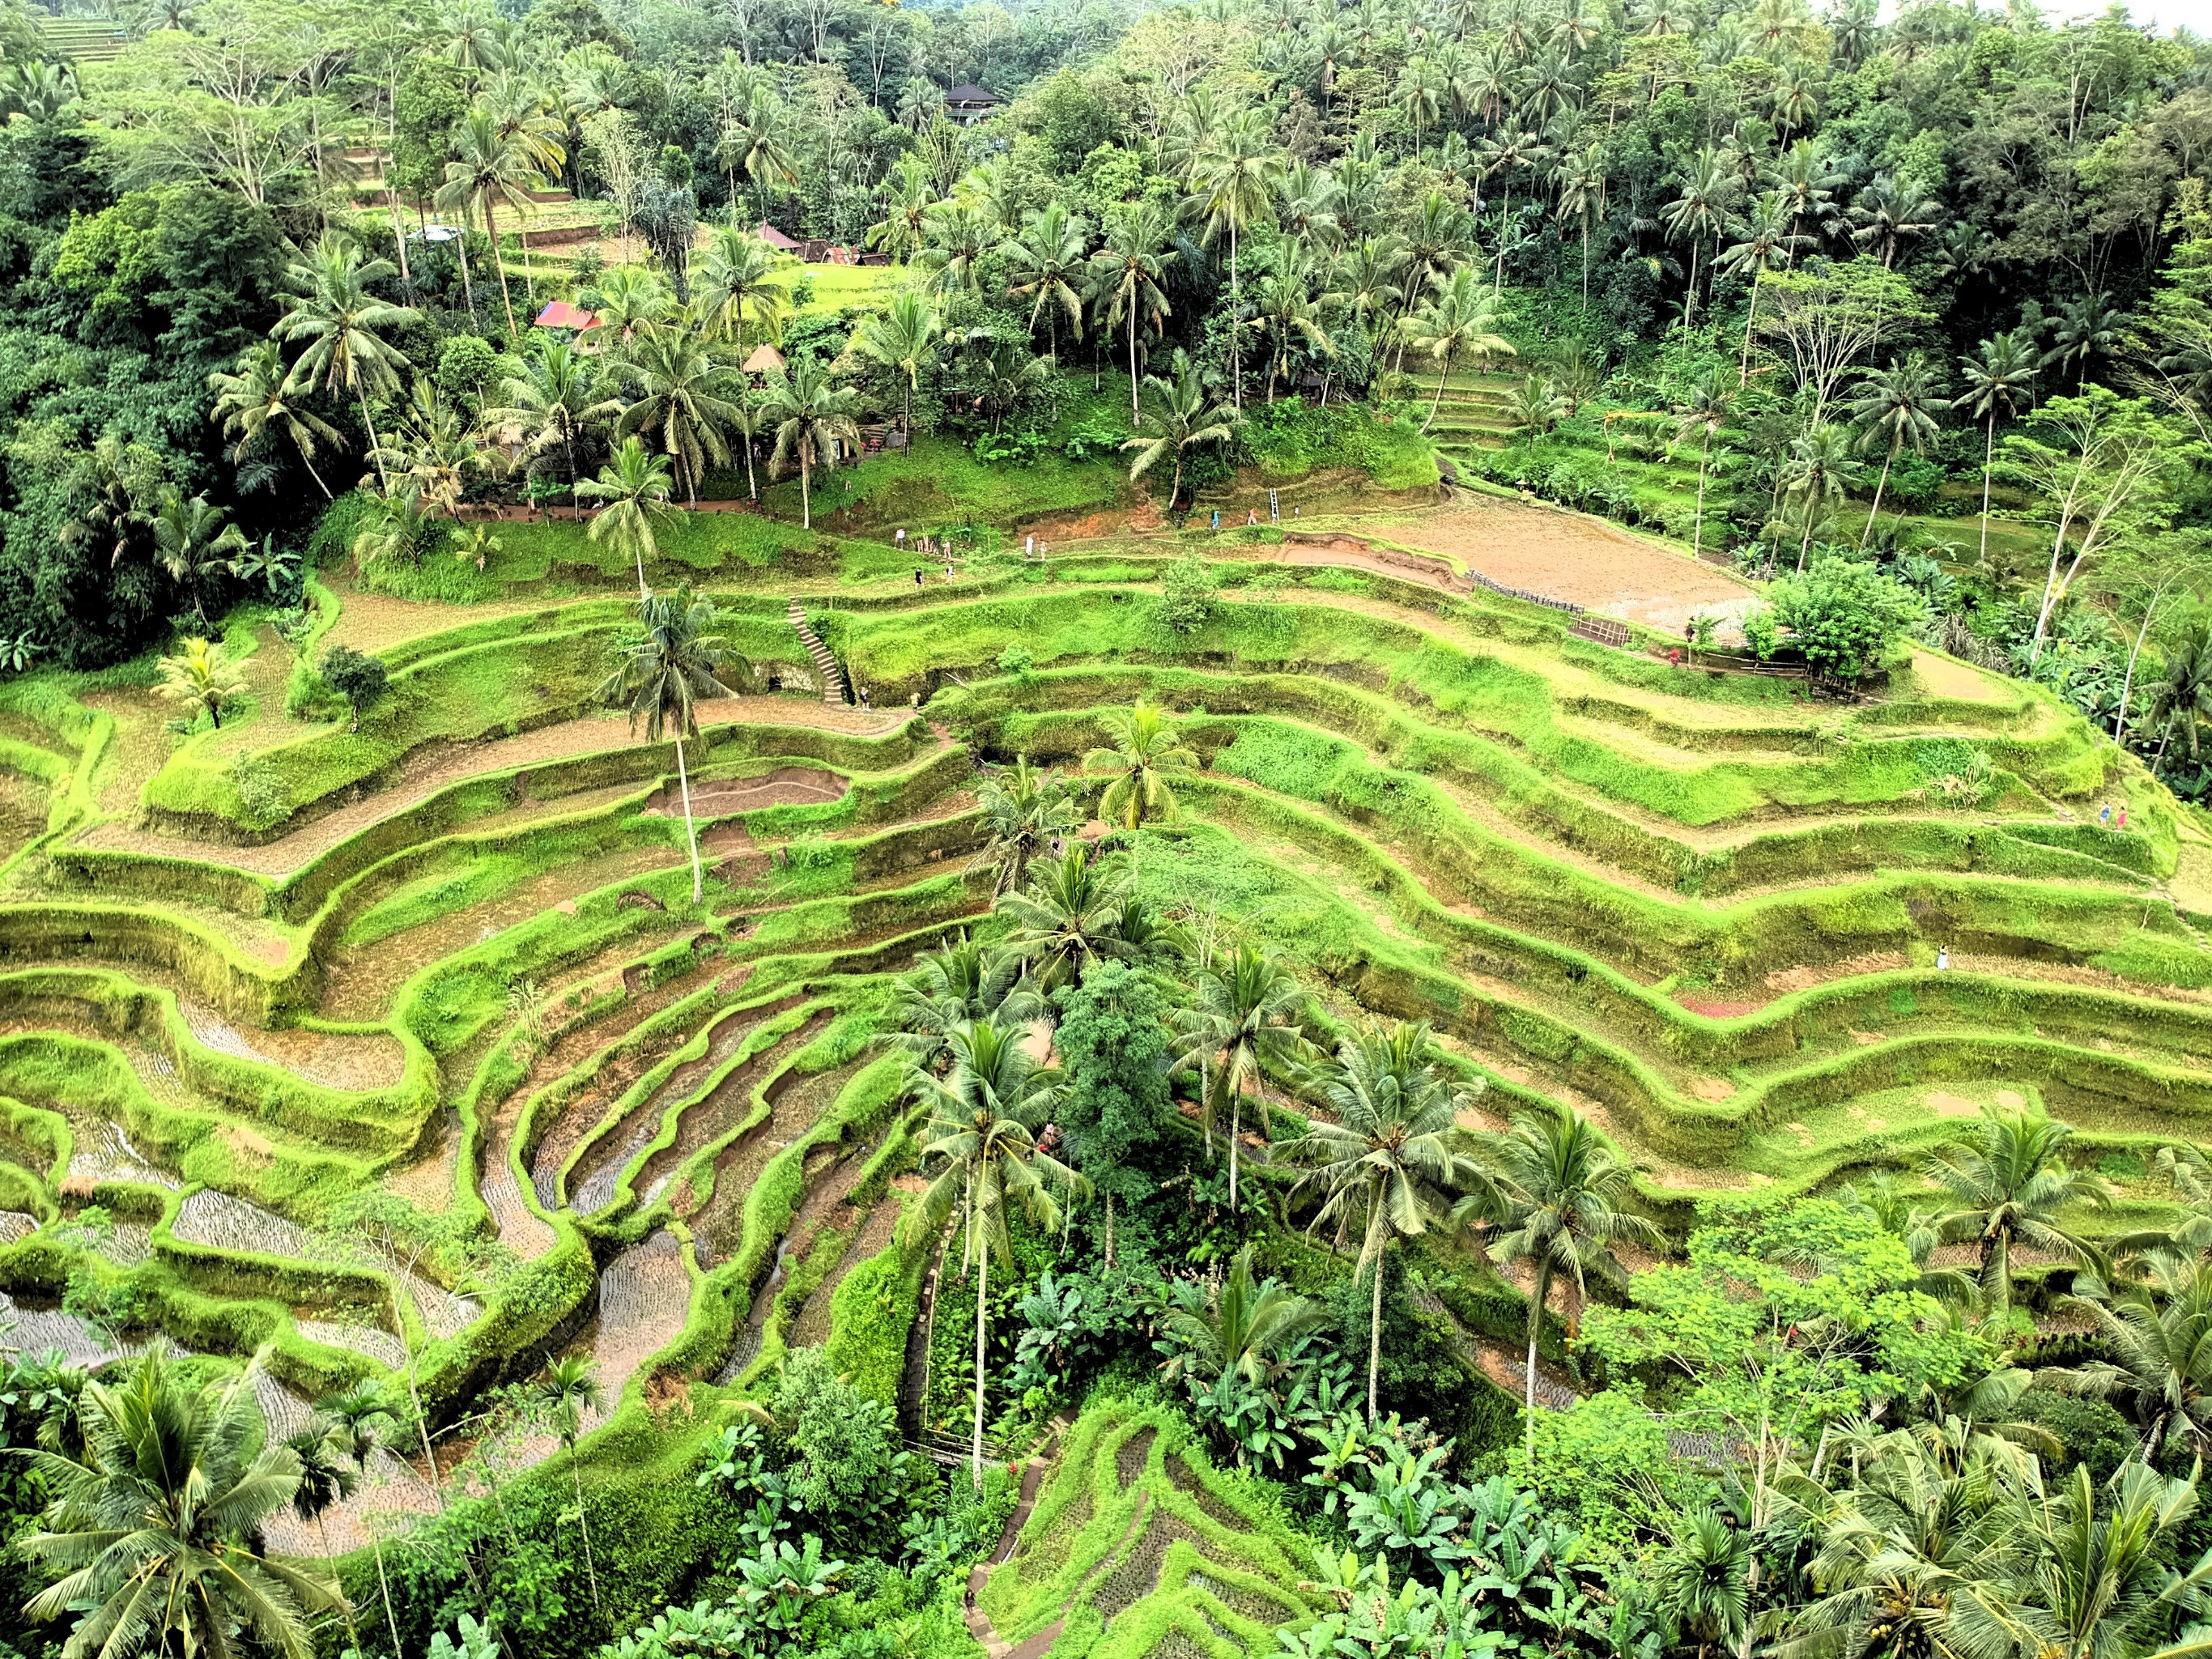 14-Day Java and Bali Grand Tour - Indonesia Itinerary